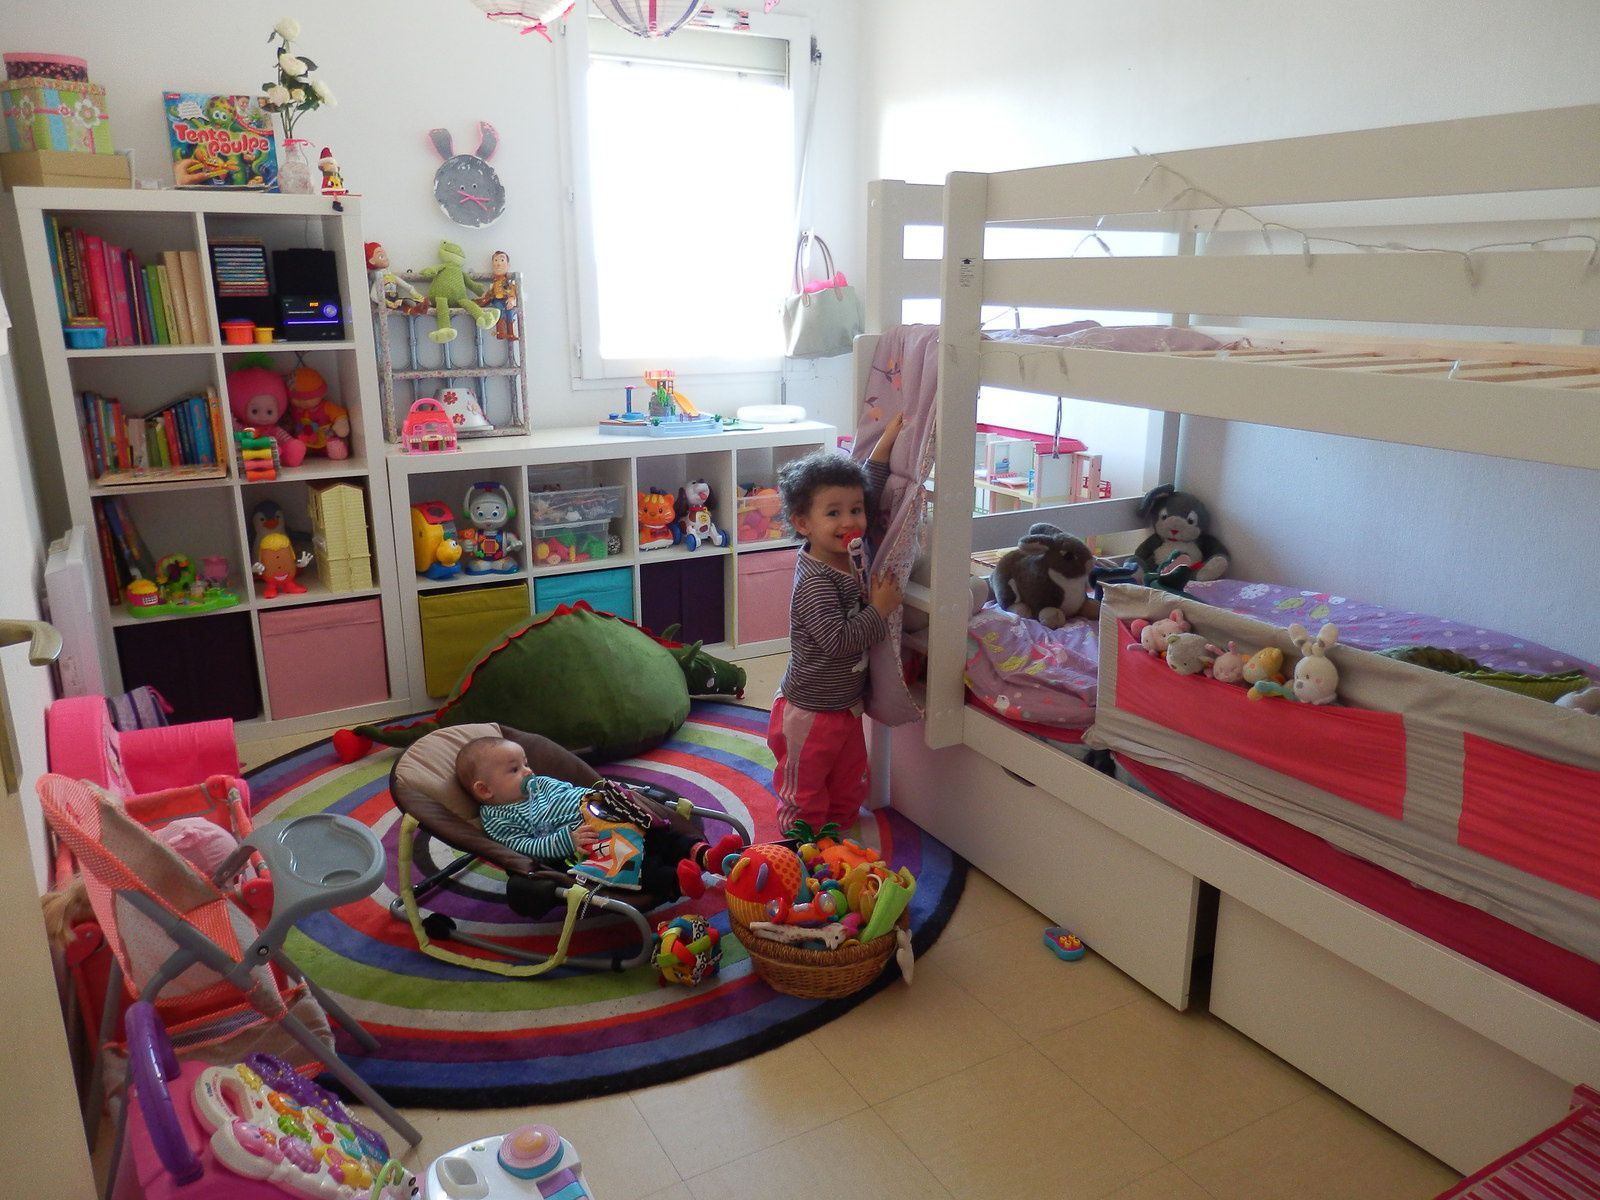 Comment decorer la chambre de ma fille de 5 ans for Decoration chambre fille 5 ans